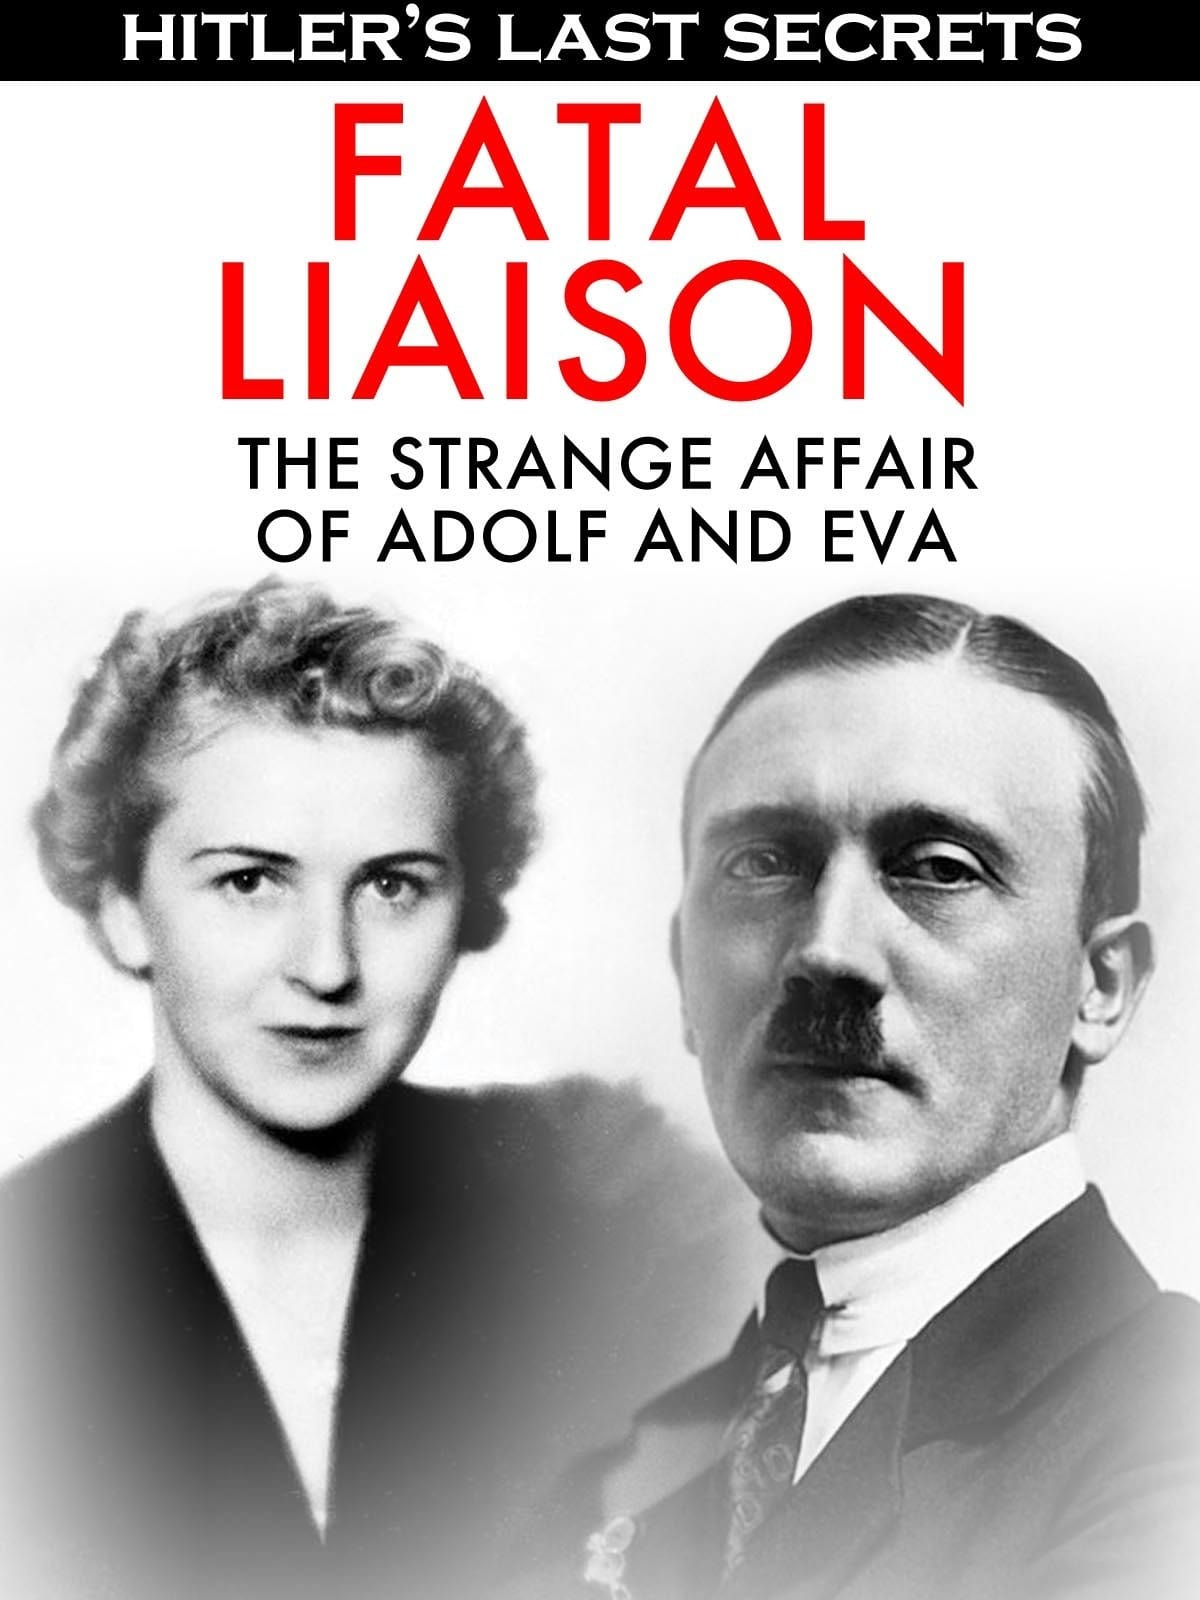 Hitler's Last Secrets: Fatal Liaison - The Strange Affair of Adolf and Eva on FREECABLE TV